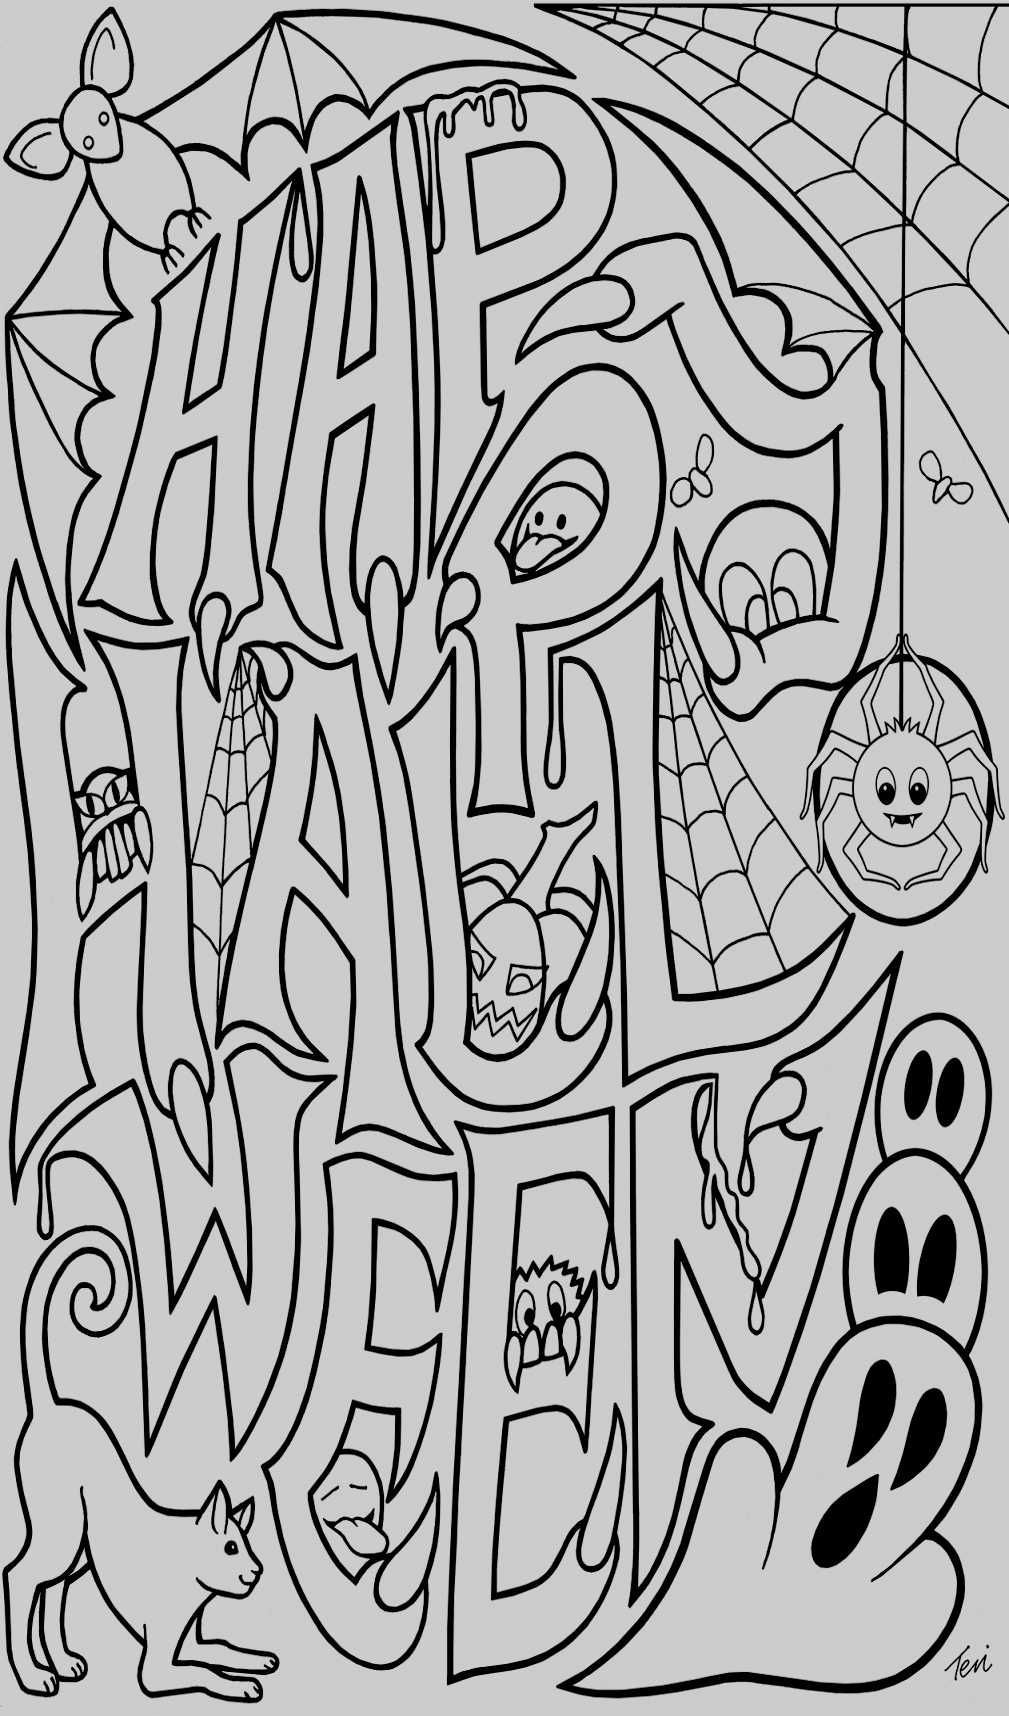 Frankenstein Coloring Pages Halloween Frankenstein Coloring Pages Fr Halloween Coloring Pages Printable Free Halloween Coloring Pages Halloween Coloring Sheets